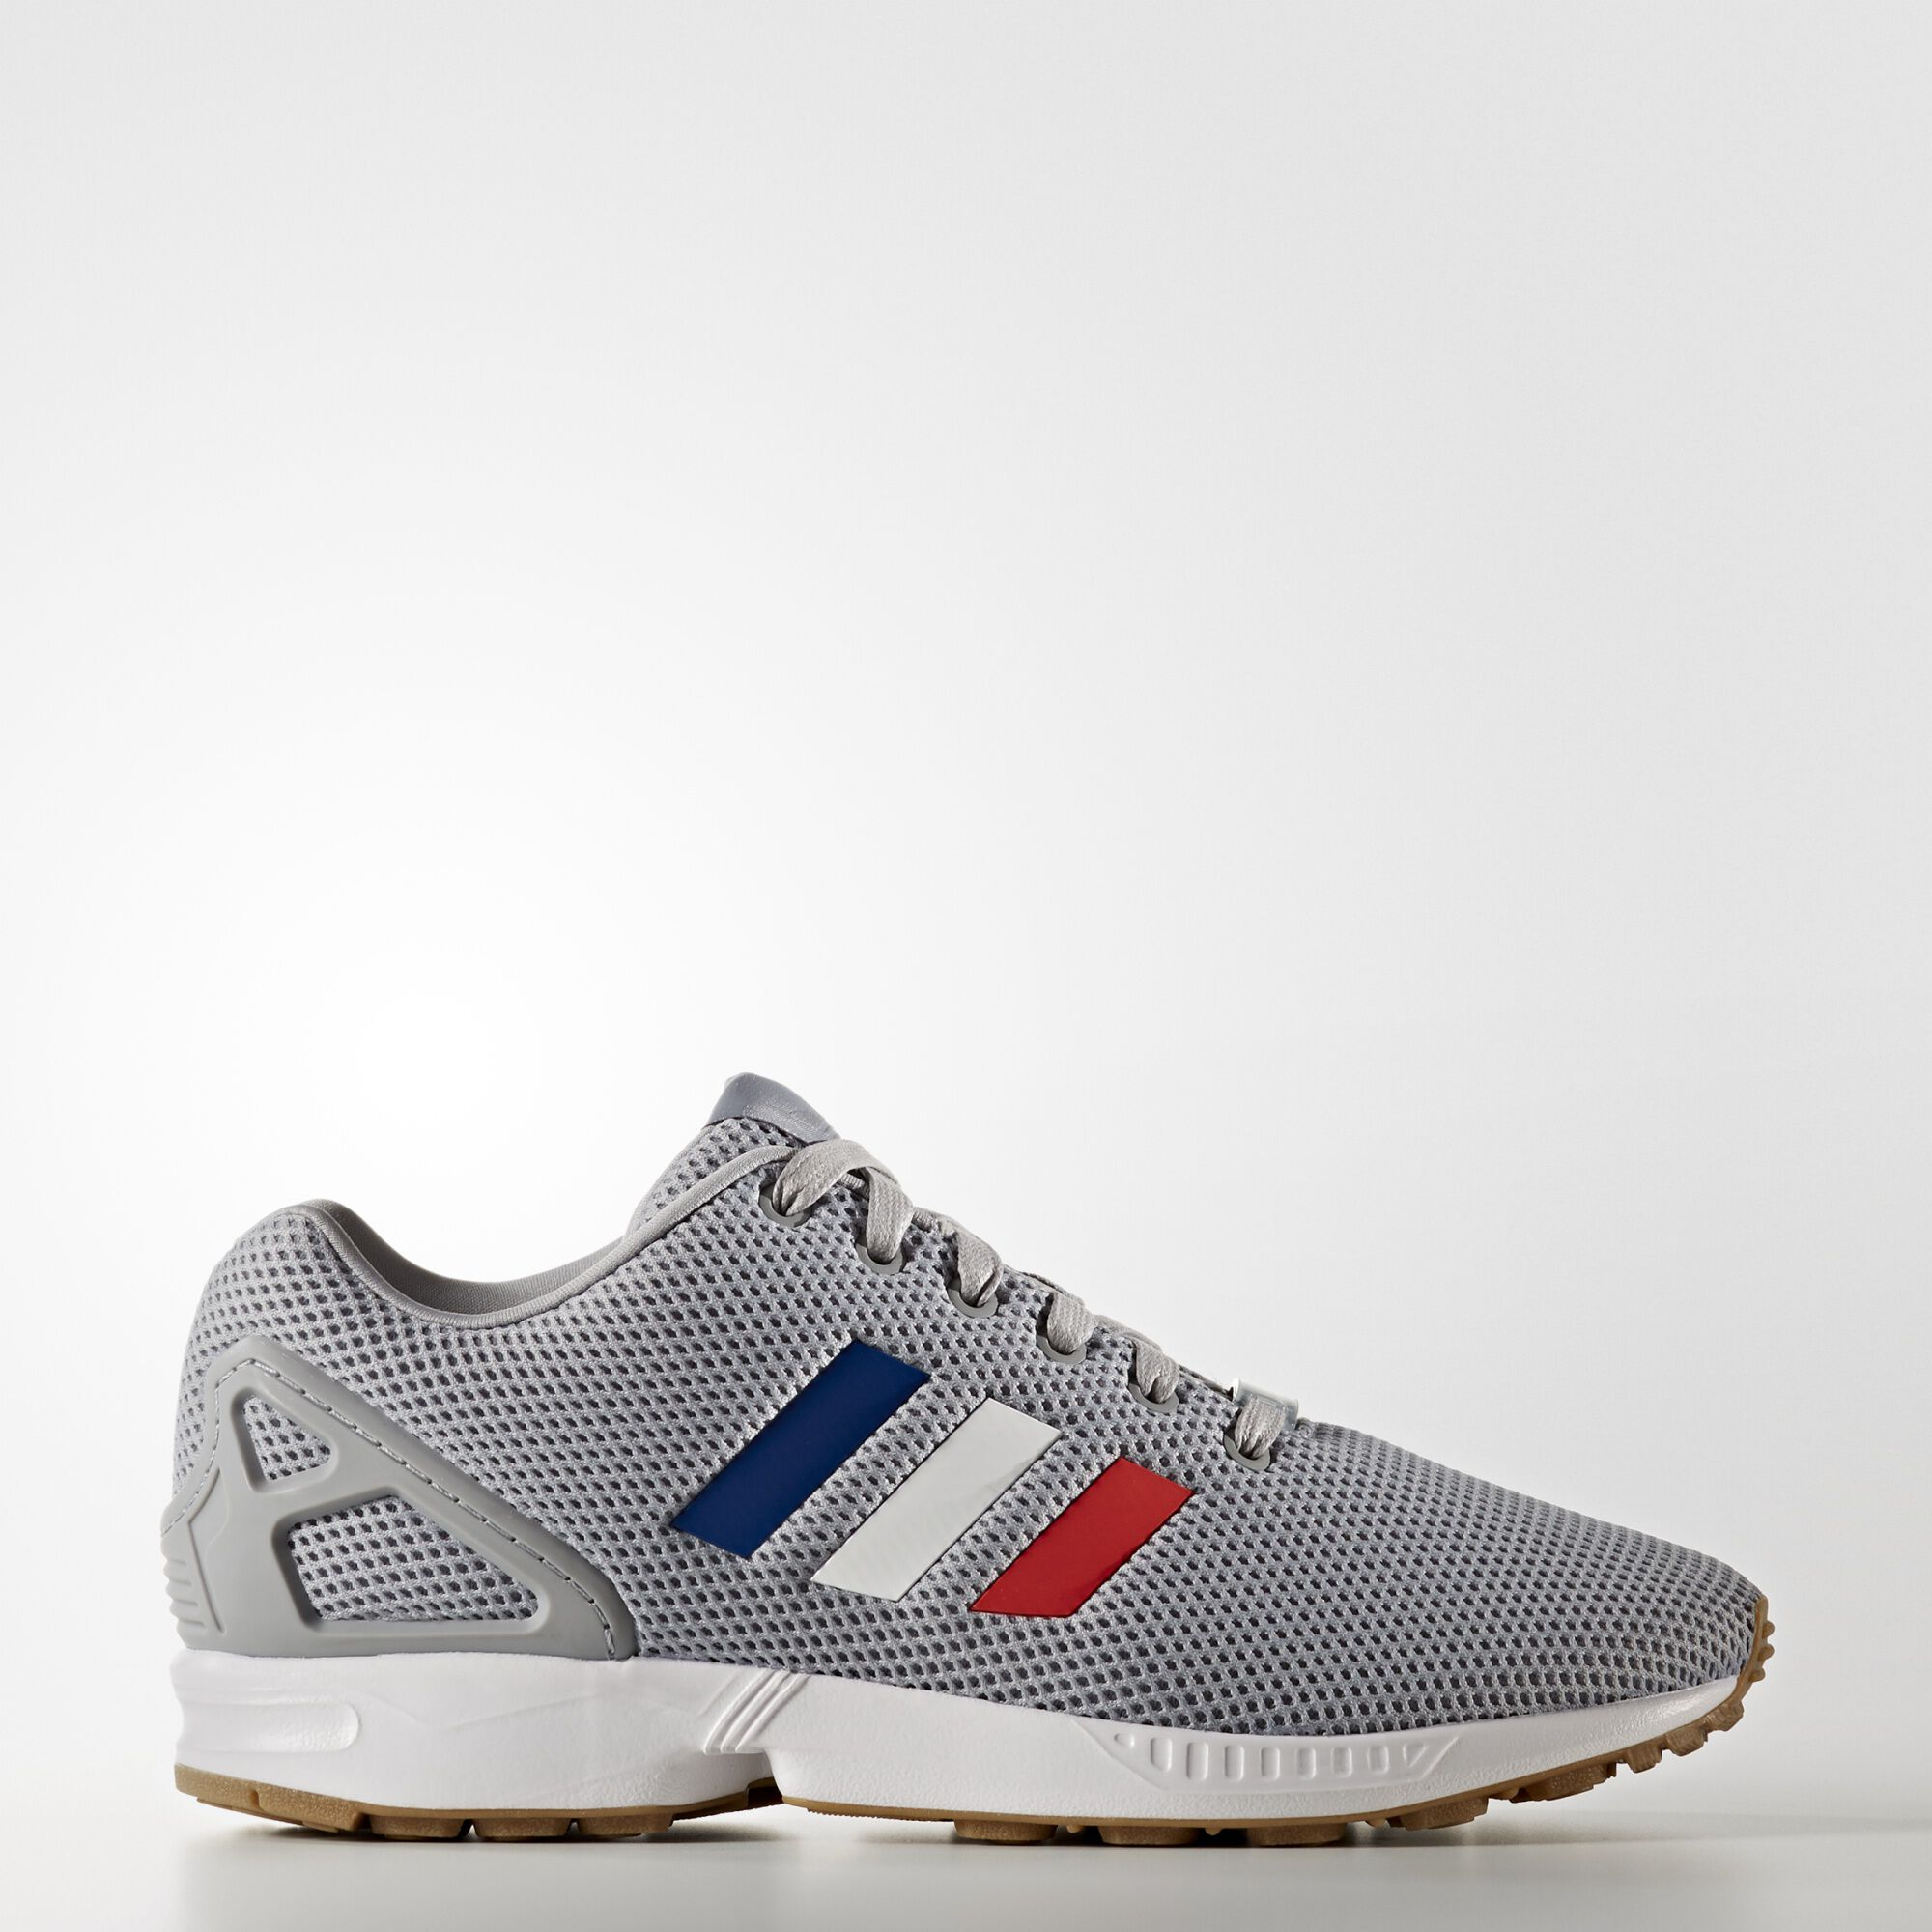 Newest Adidas Originals Zx Flux Grey Mens Trainers Outlet UK0197